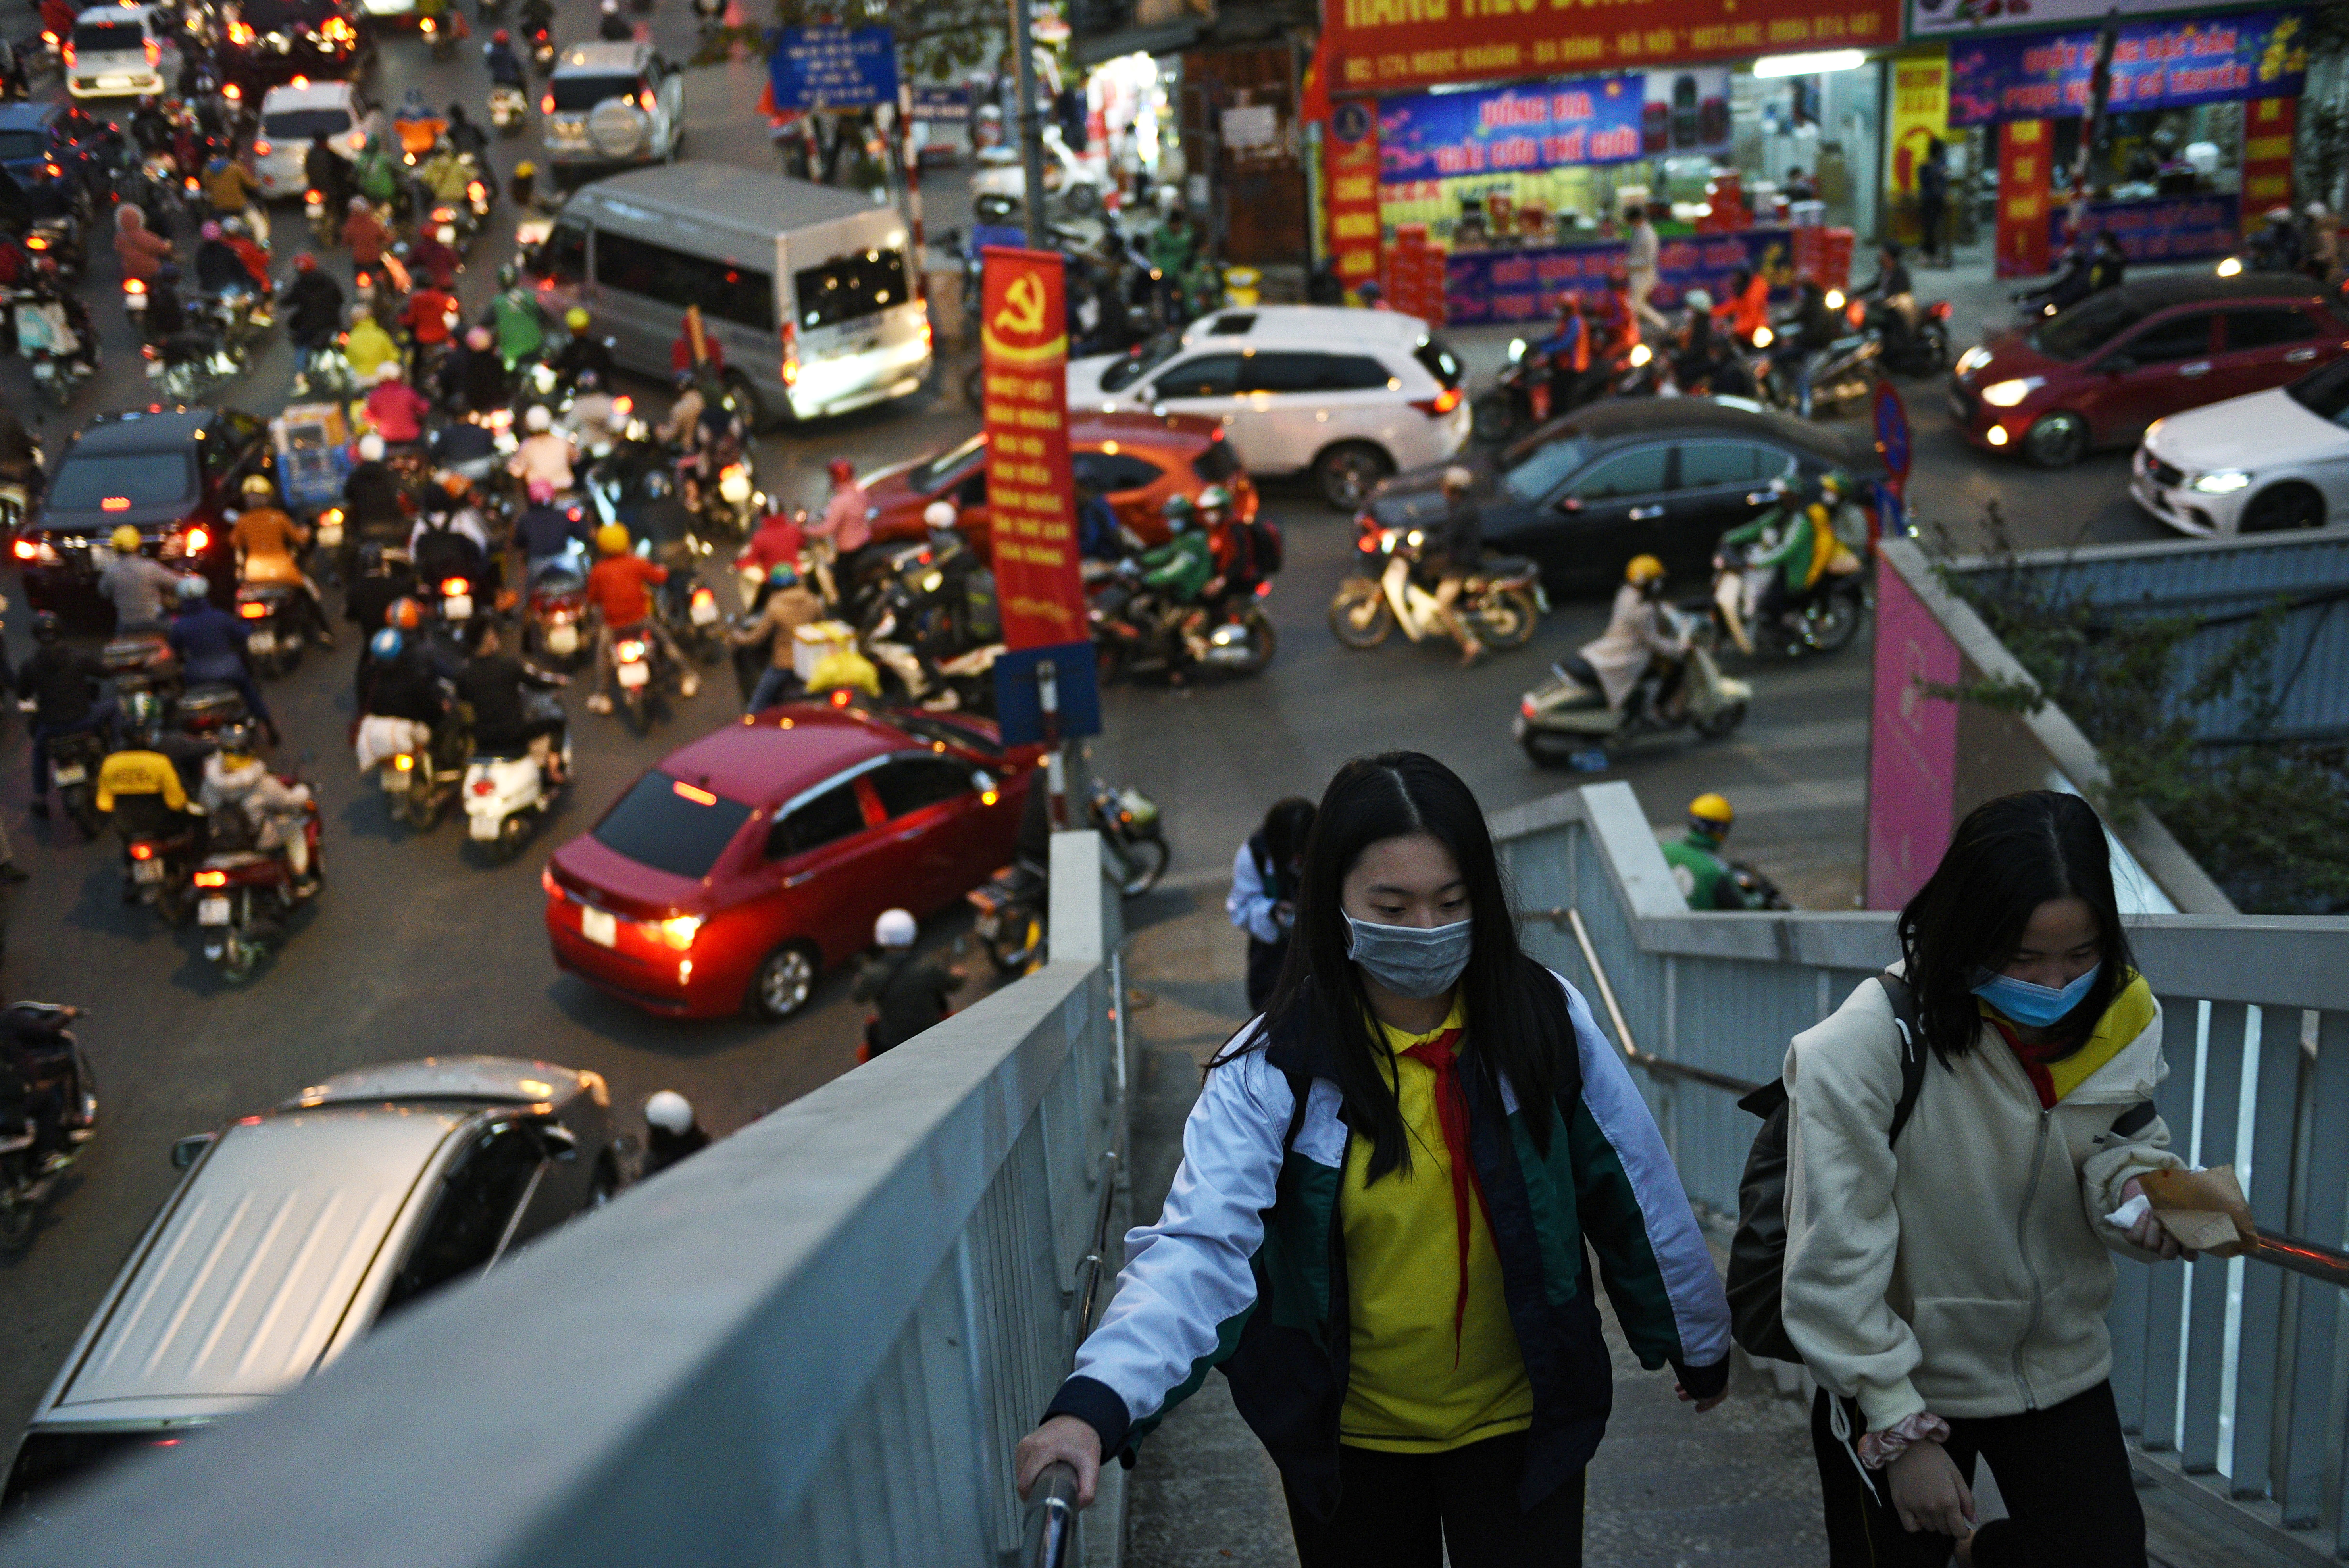 Gilrs walks in a overpass as they wear protective masks in the street amid the coronavirus disease (COVID-19) outbreak in Hanoi, Vietnam, January 29, 2021. REUTERS/Thanh Hue